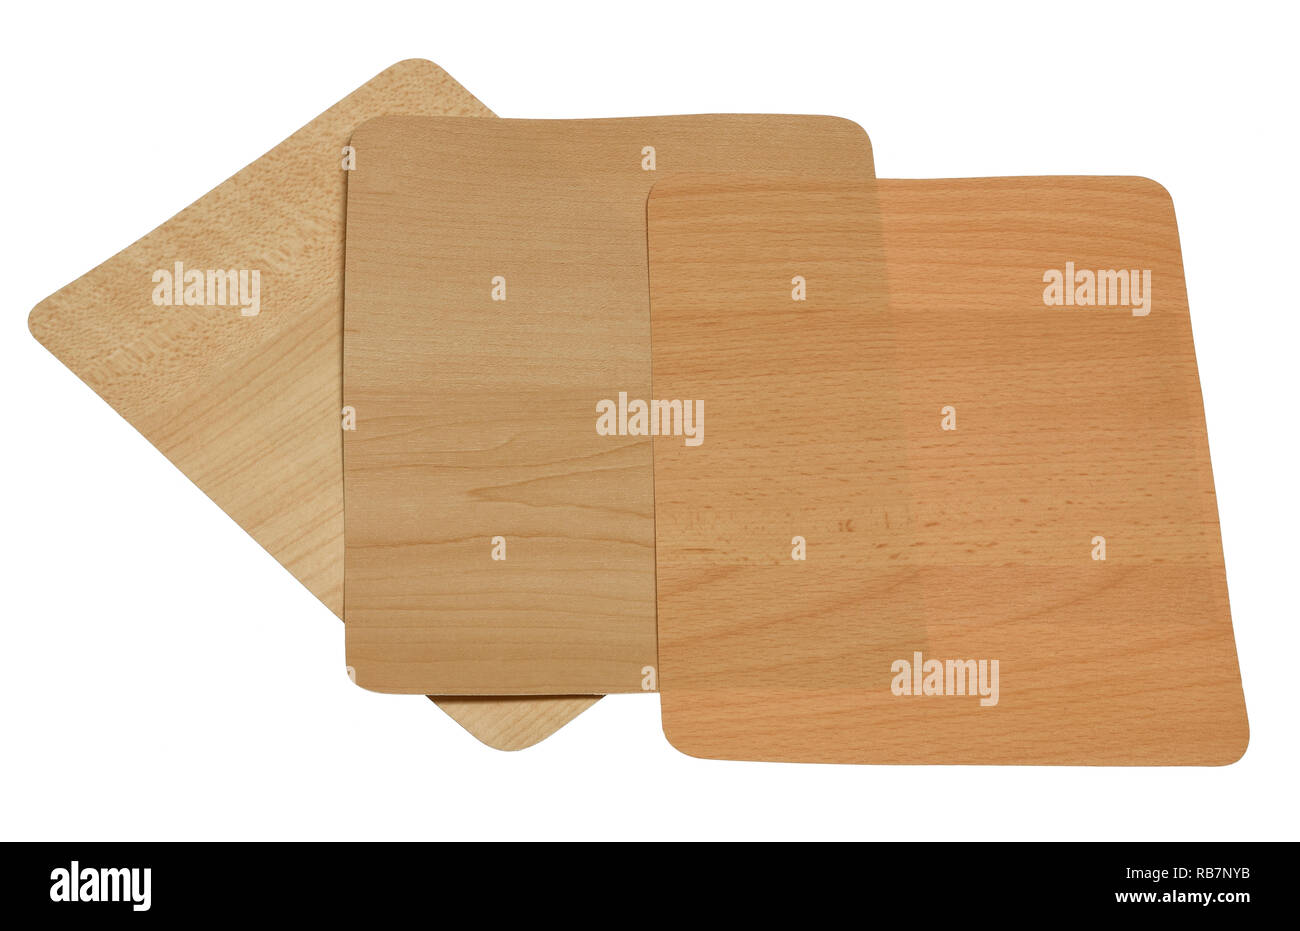 Three sample swatches of a wood effect for furniture panels - Stock Image